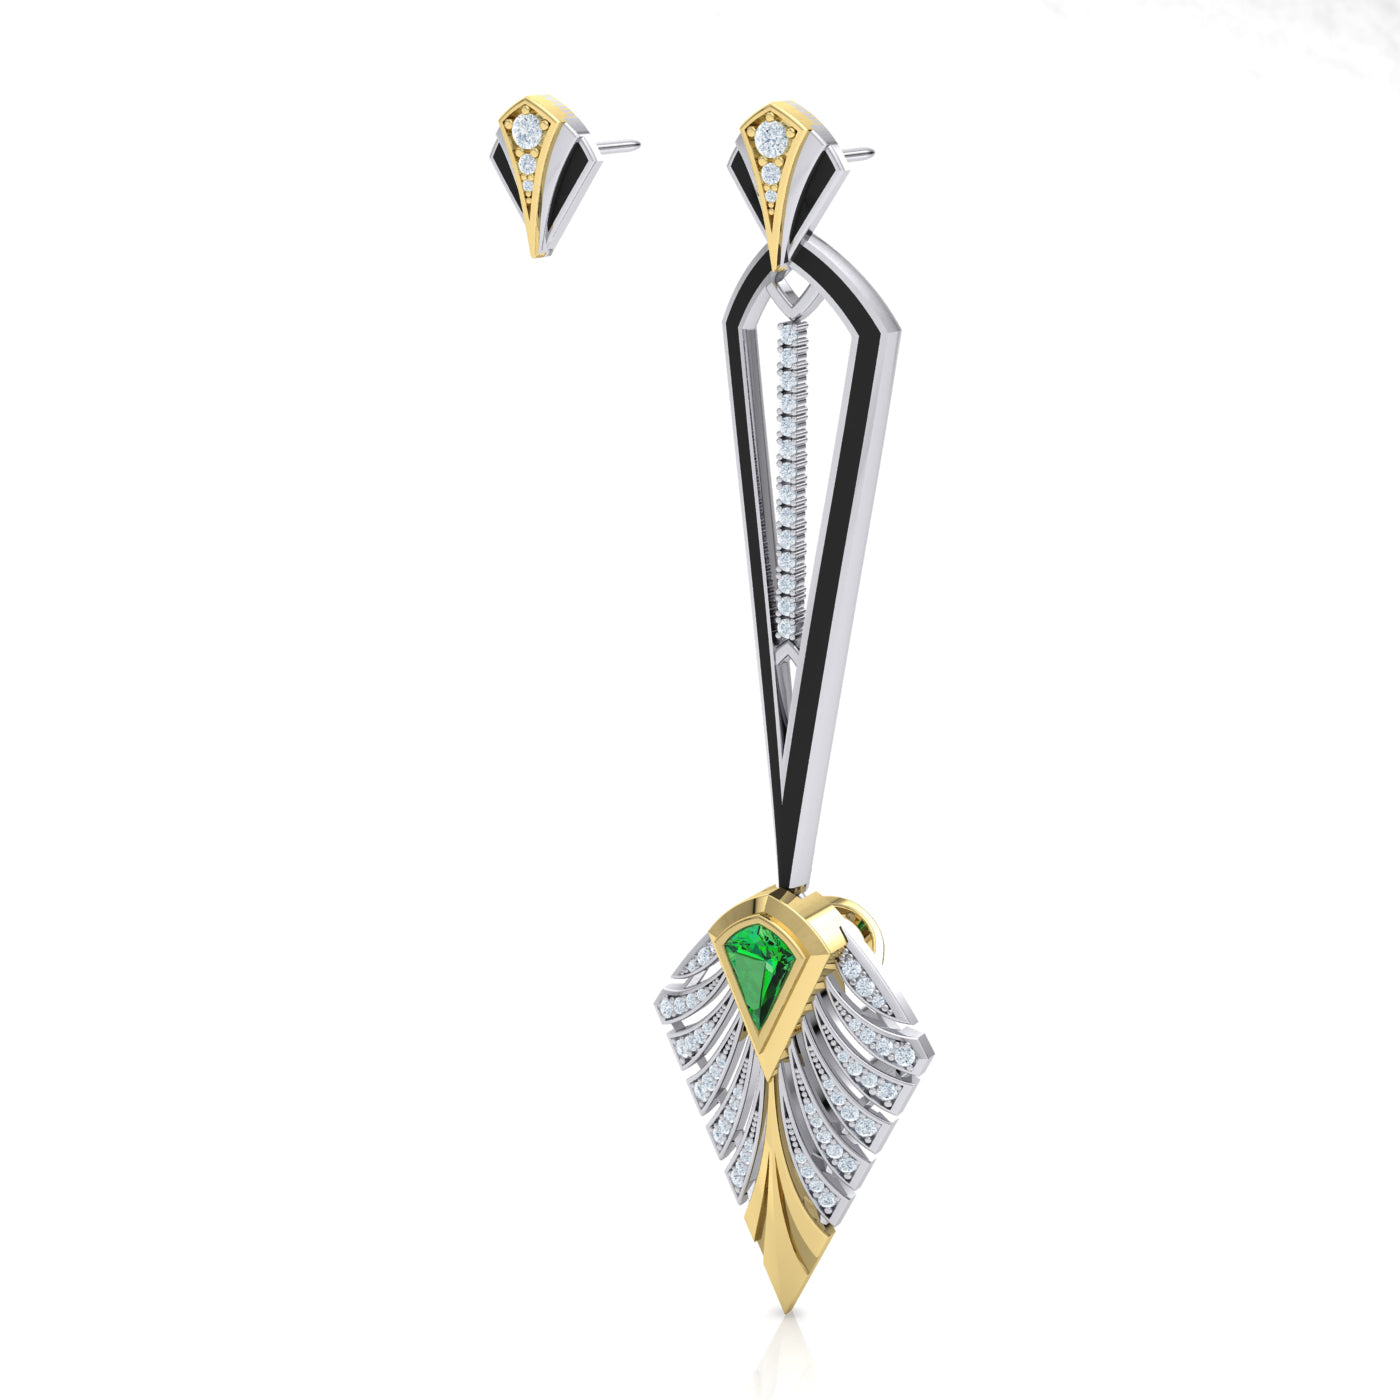 Asymmetrical Diamond Couture Earring in 18kt gold